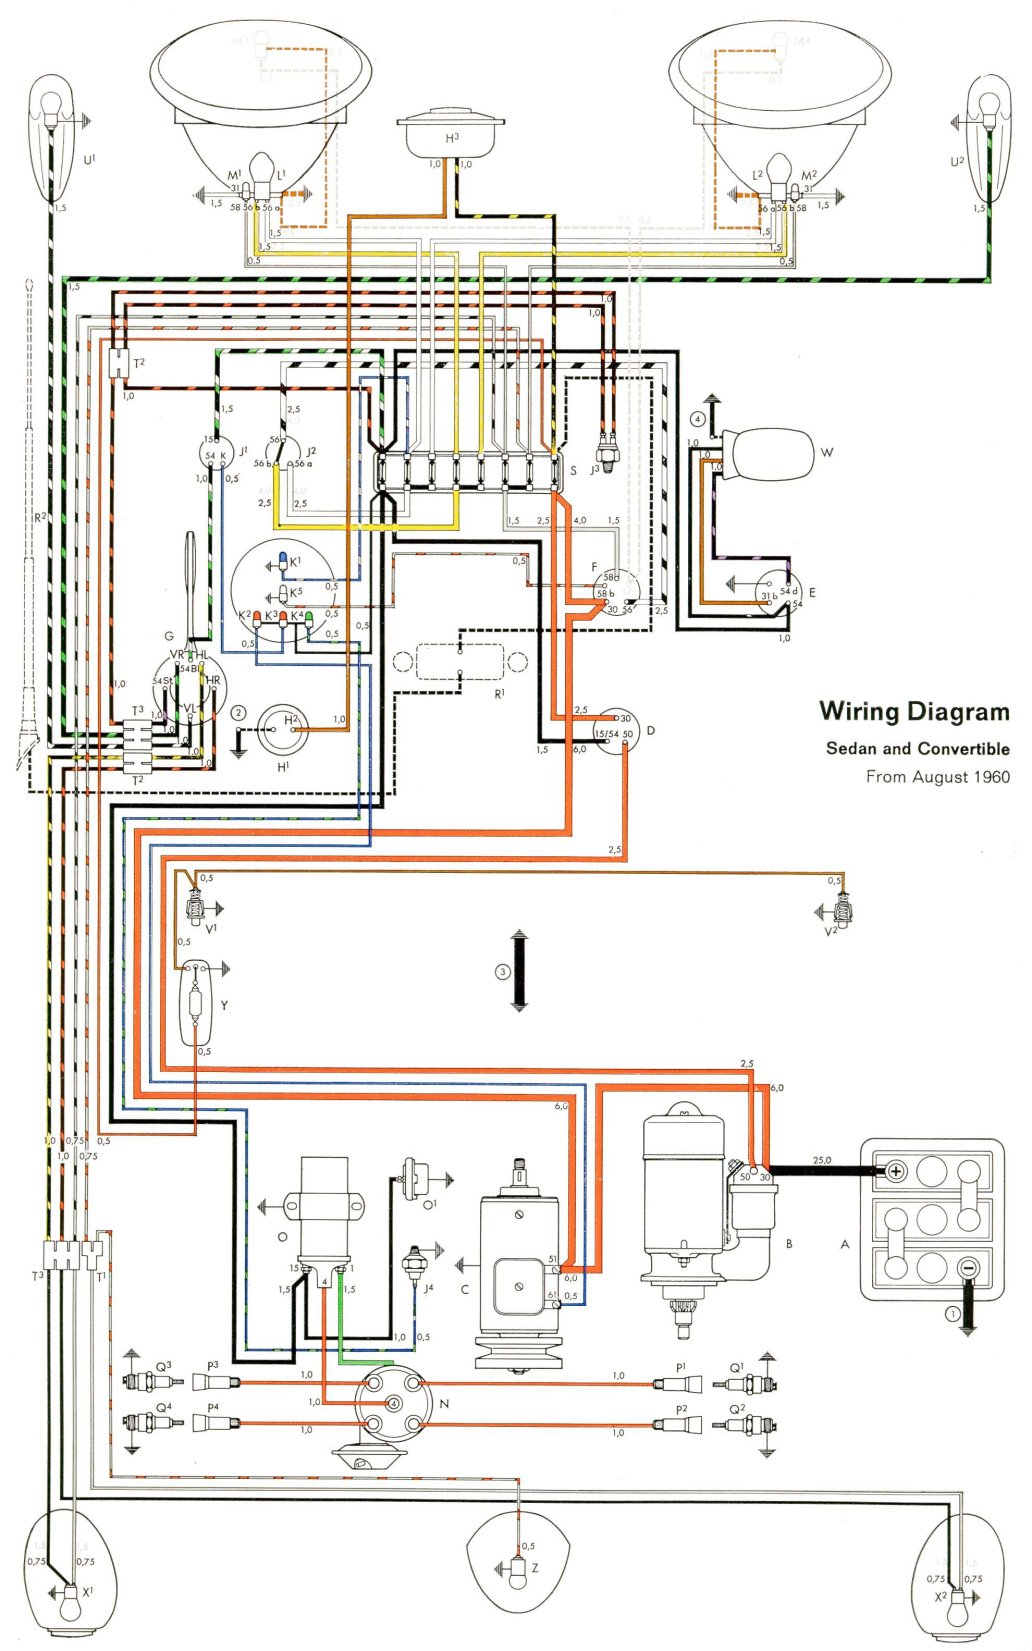 1961 beetle wiring diagram thegoldenbug com 1965 VW Beetle Wiring Diagram vw bug wiring schematic